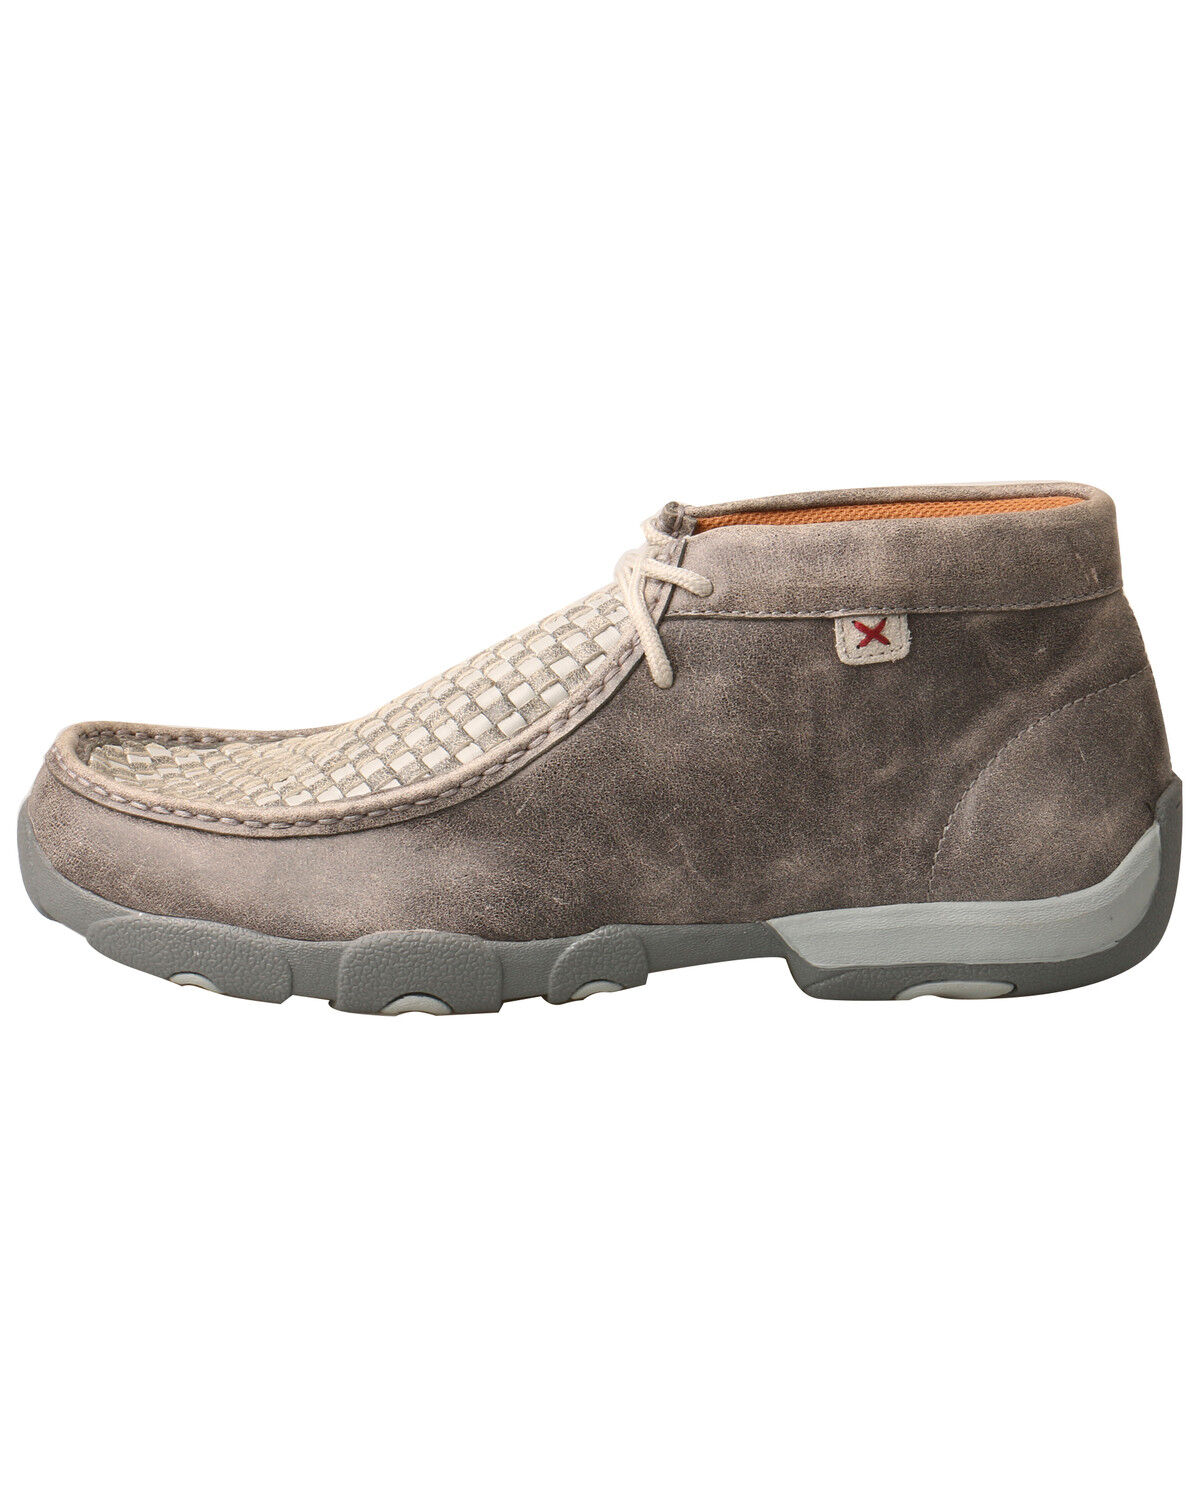 Twisted X Mens Driving Moccasin Shoes Moc Toe